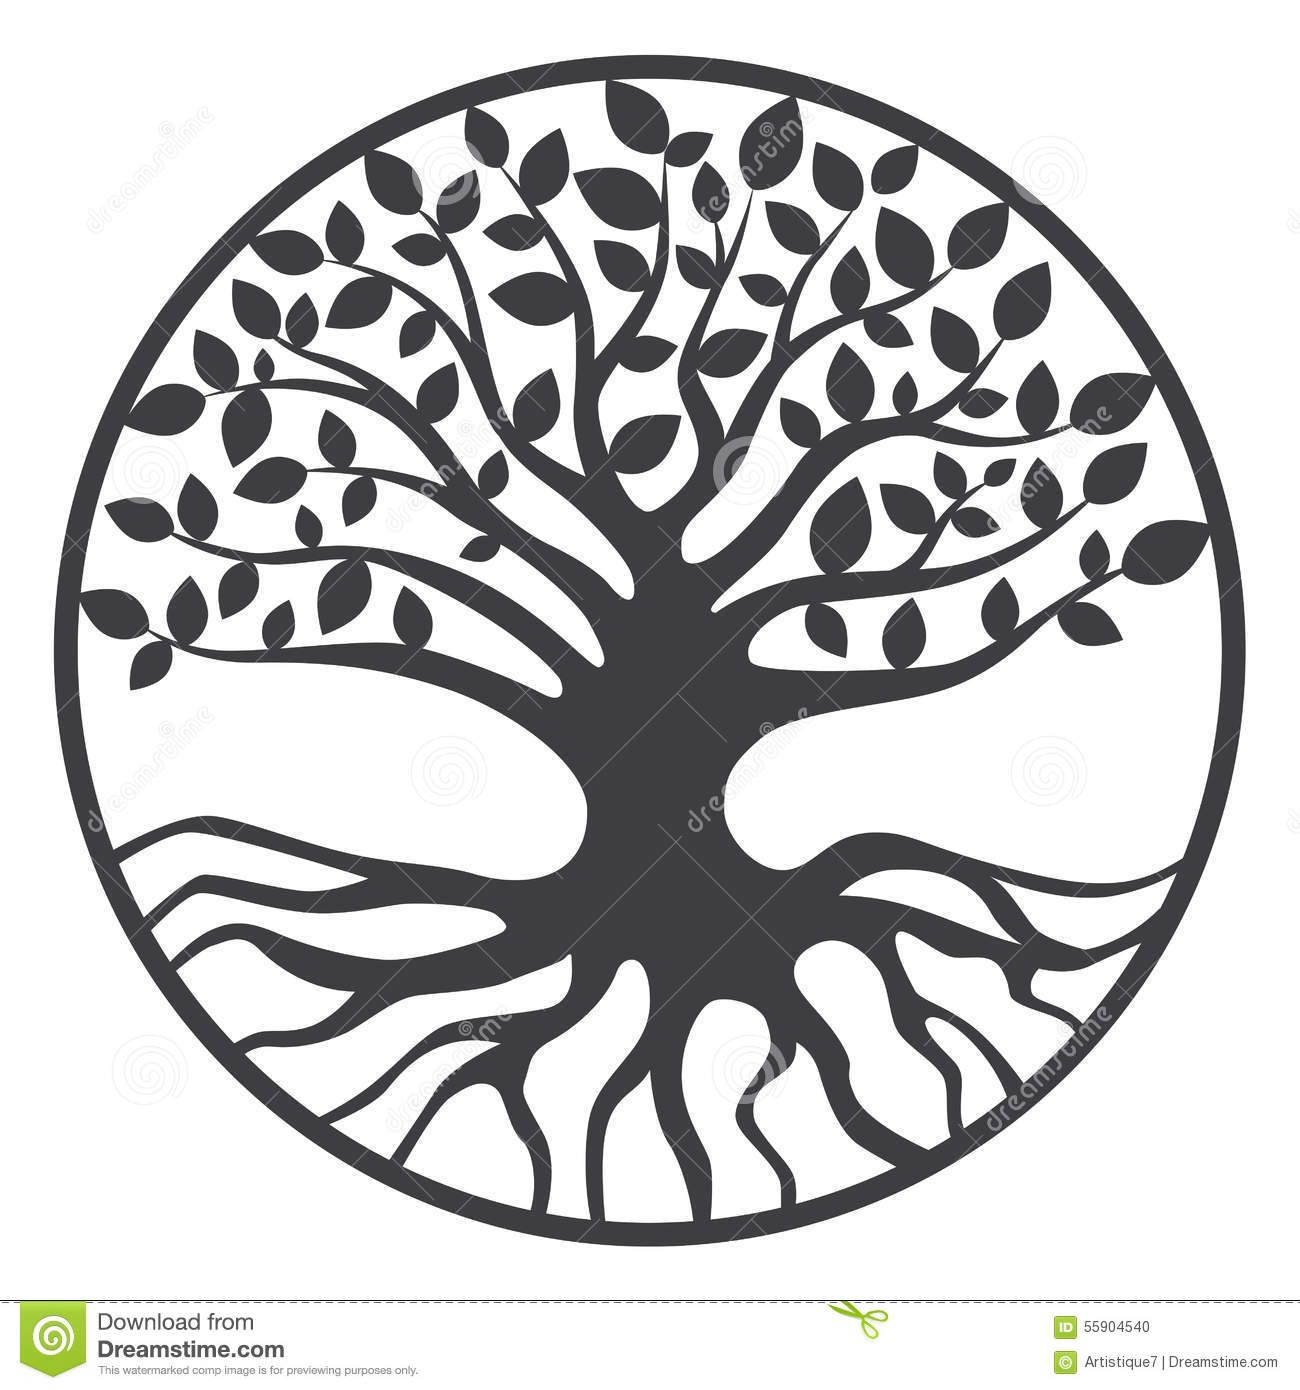 Tree of life silhouette clipart clipart Tree Of Life Royalty Free Stock Photography - Image ... clipart